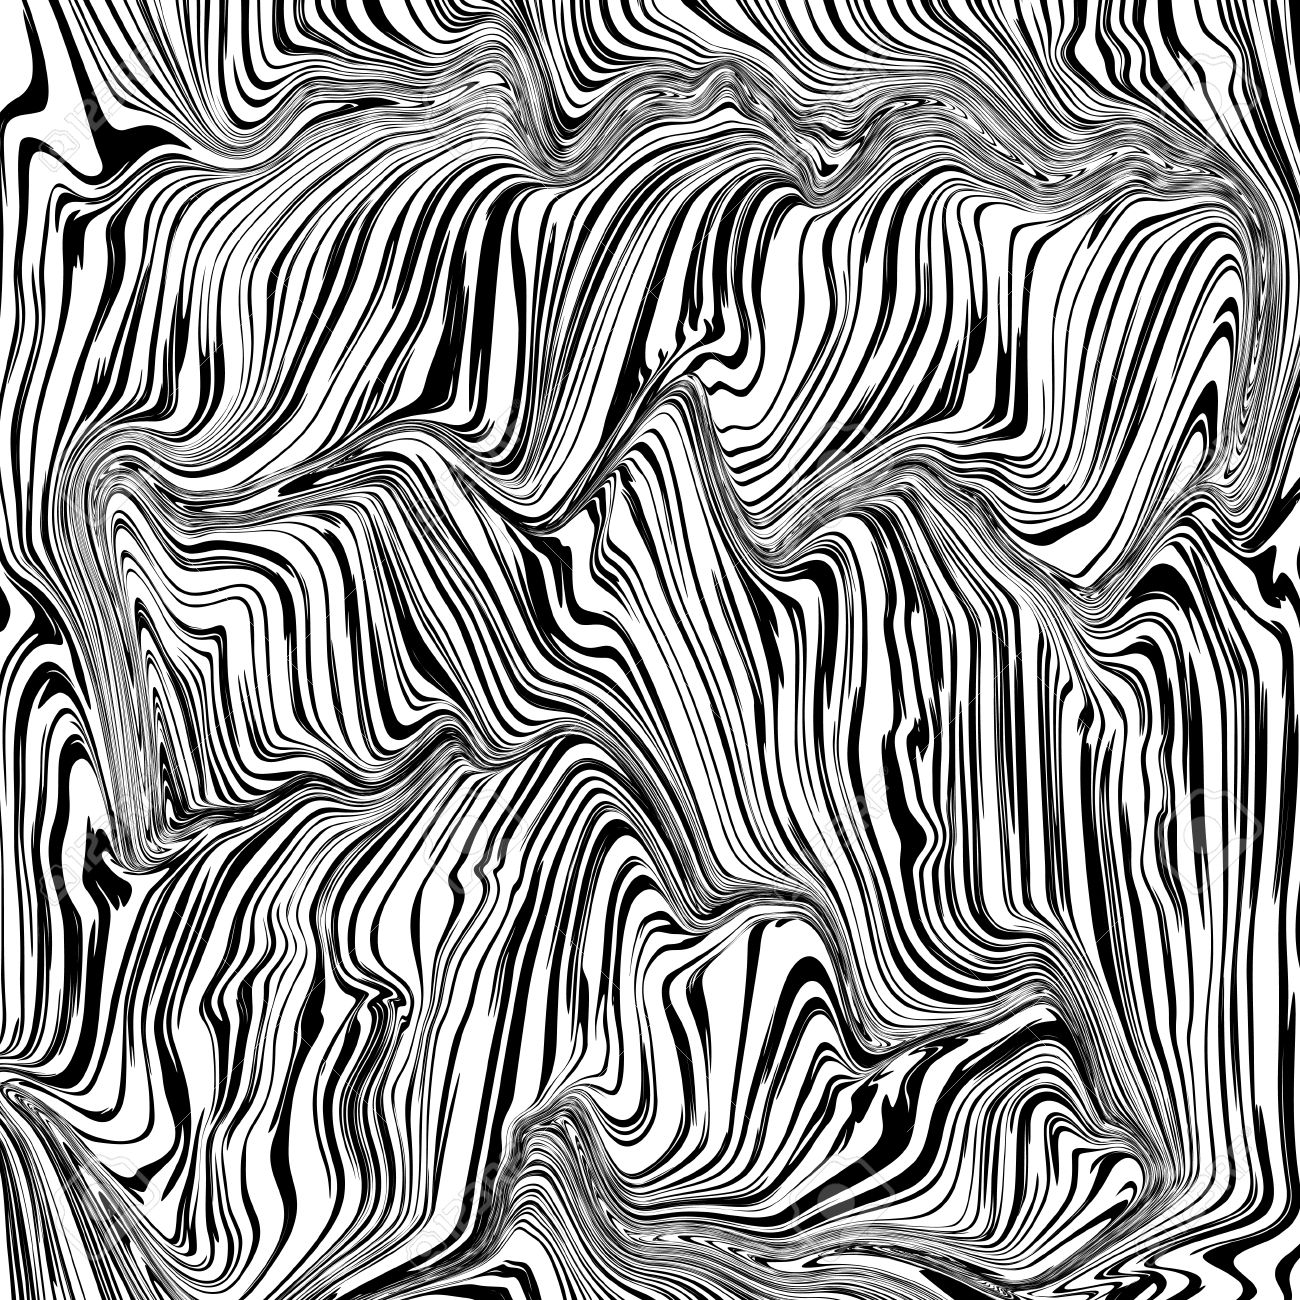 1300x1300 Abstract Black And White Texture Curved Lines Vector Background